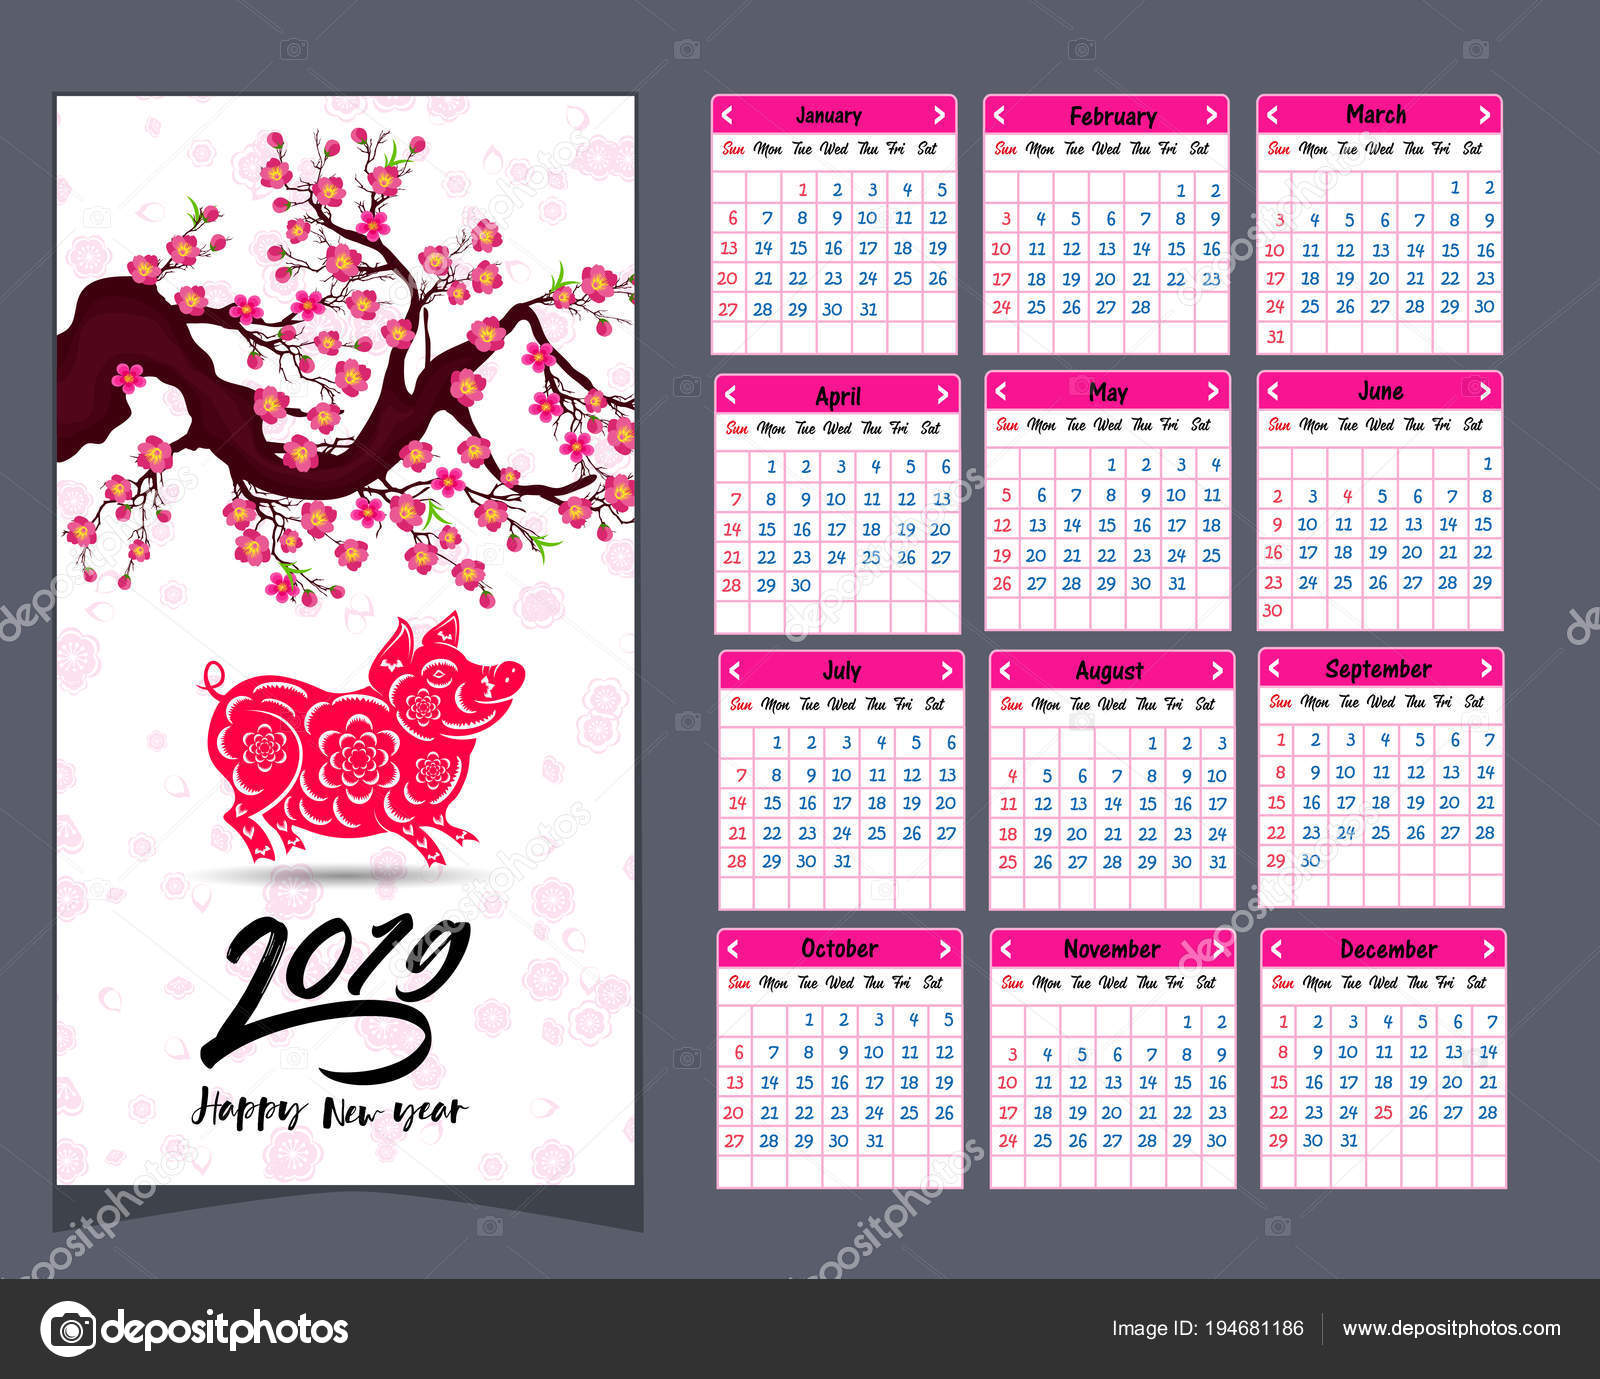 calendar 2019 chinese calendar for happy new year 2019 year of the pig vector by tieulong